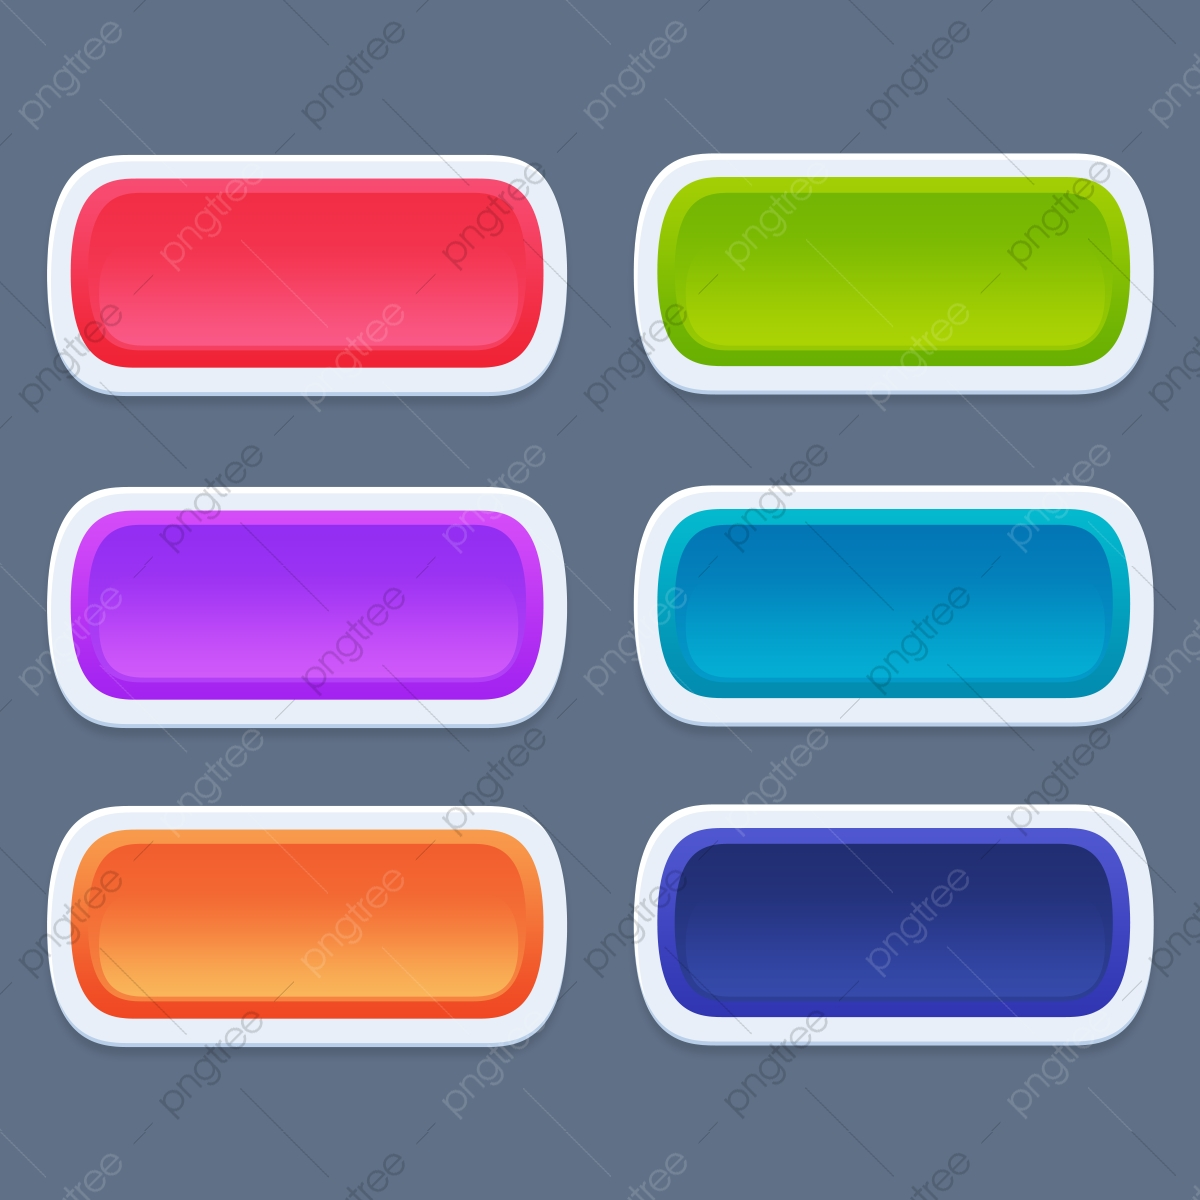 ui png images vector and psd files free download on pngtree https pngtree com freepng games ui buttons cartoonic 2d and 3d game button illustration 5300455 html